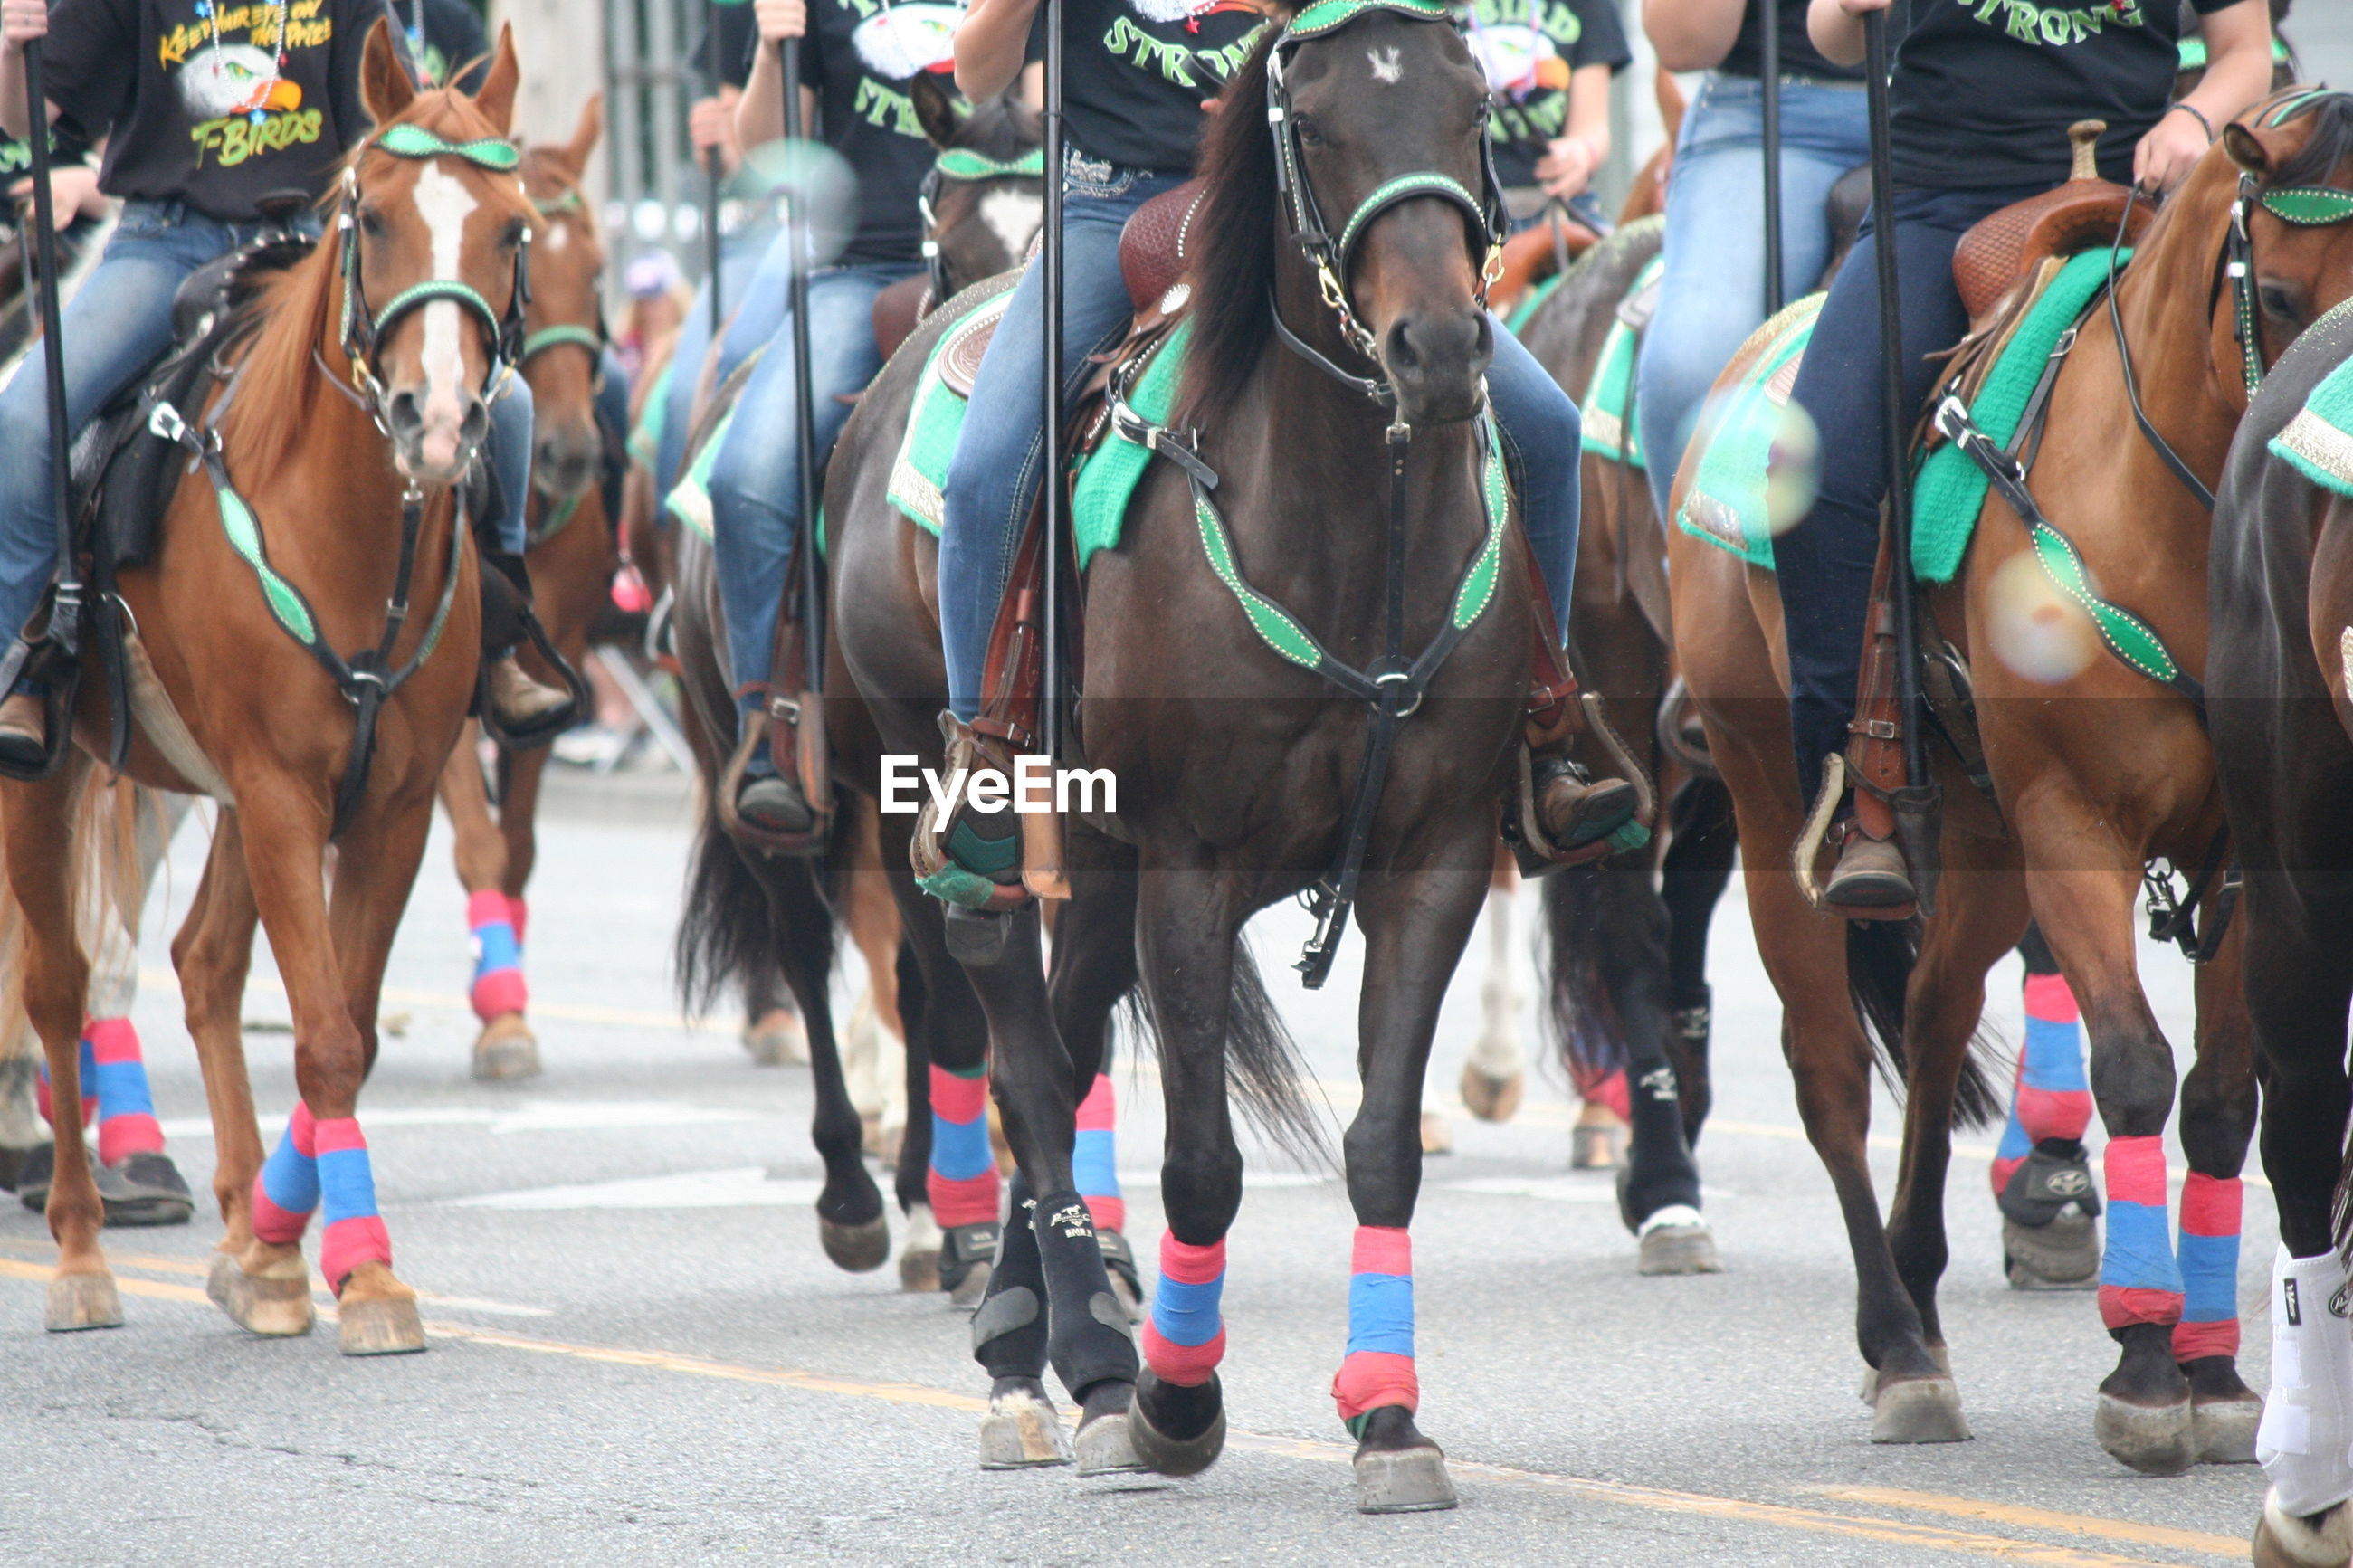 Low section of people riding horses during fourth of july parade